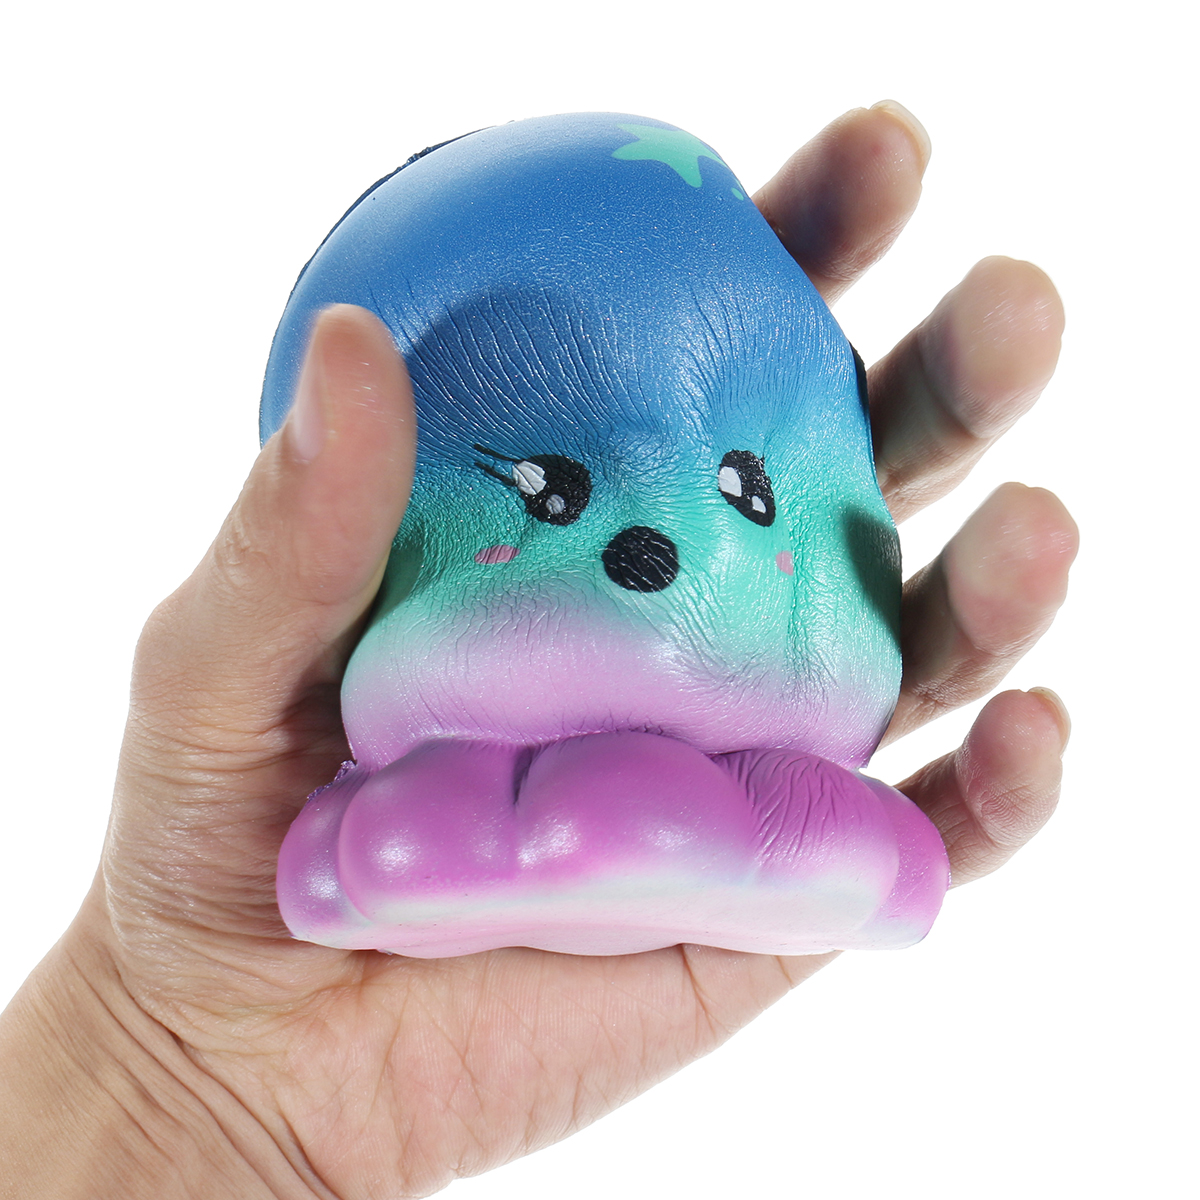 Squishy Doll Jellyfish Octopus Cute Cartoon Animal Slow Rising Toy Gift Collection